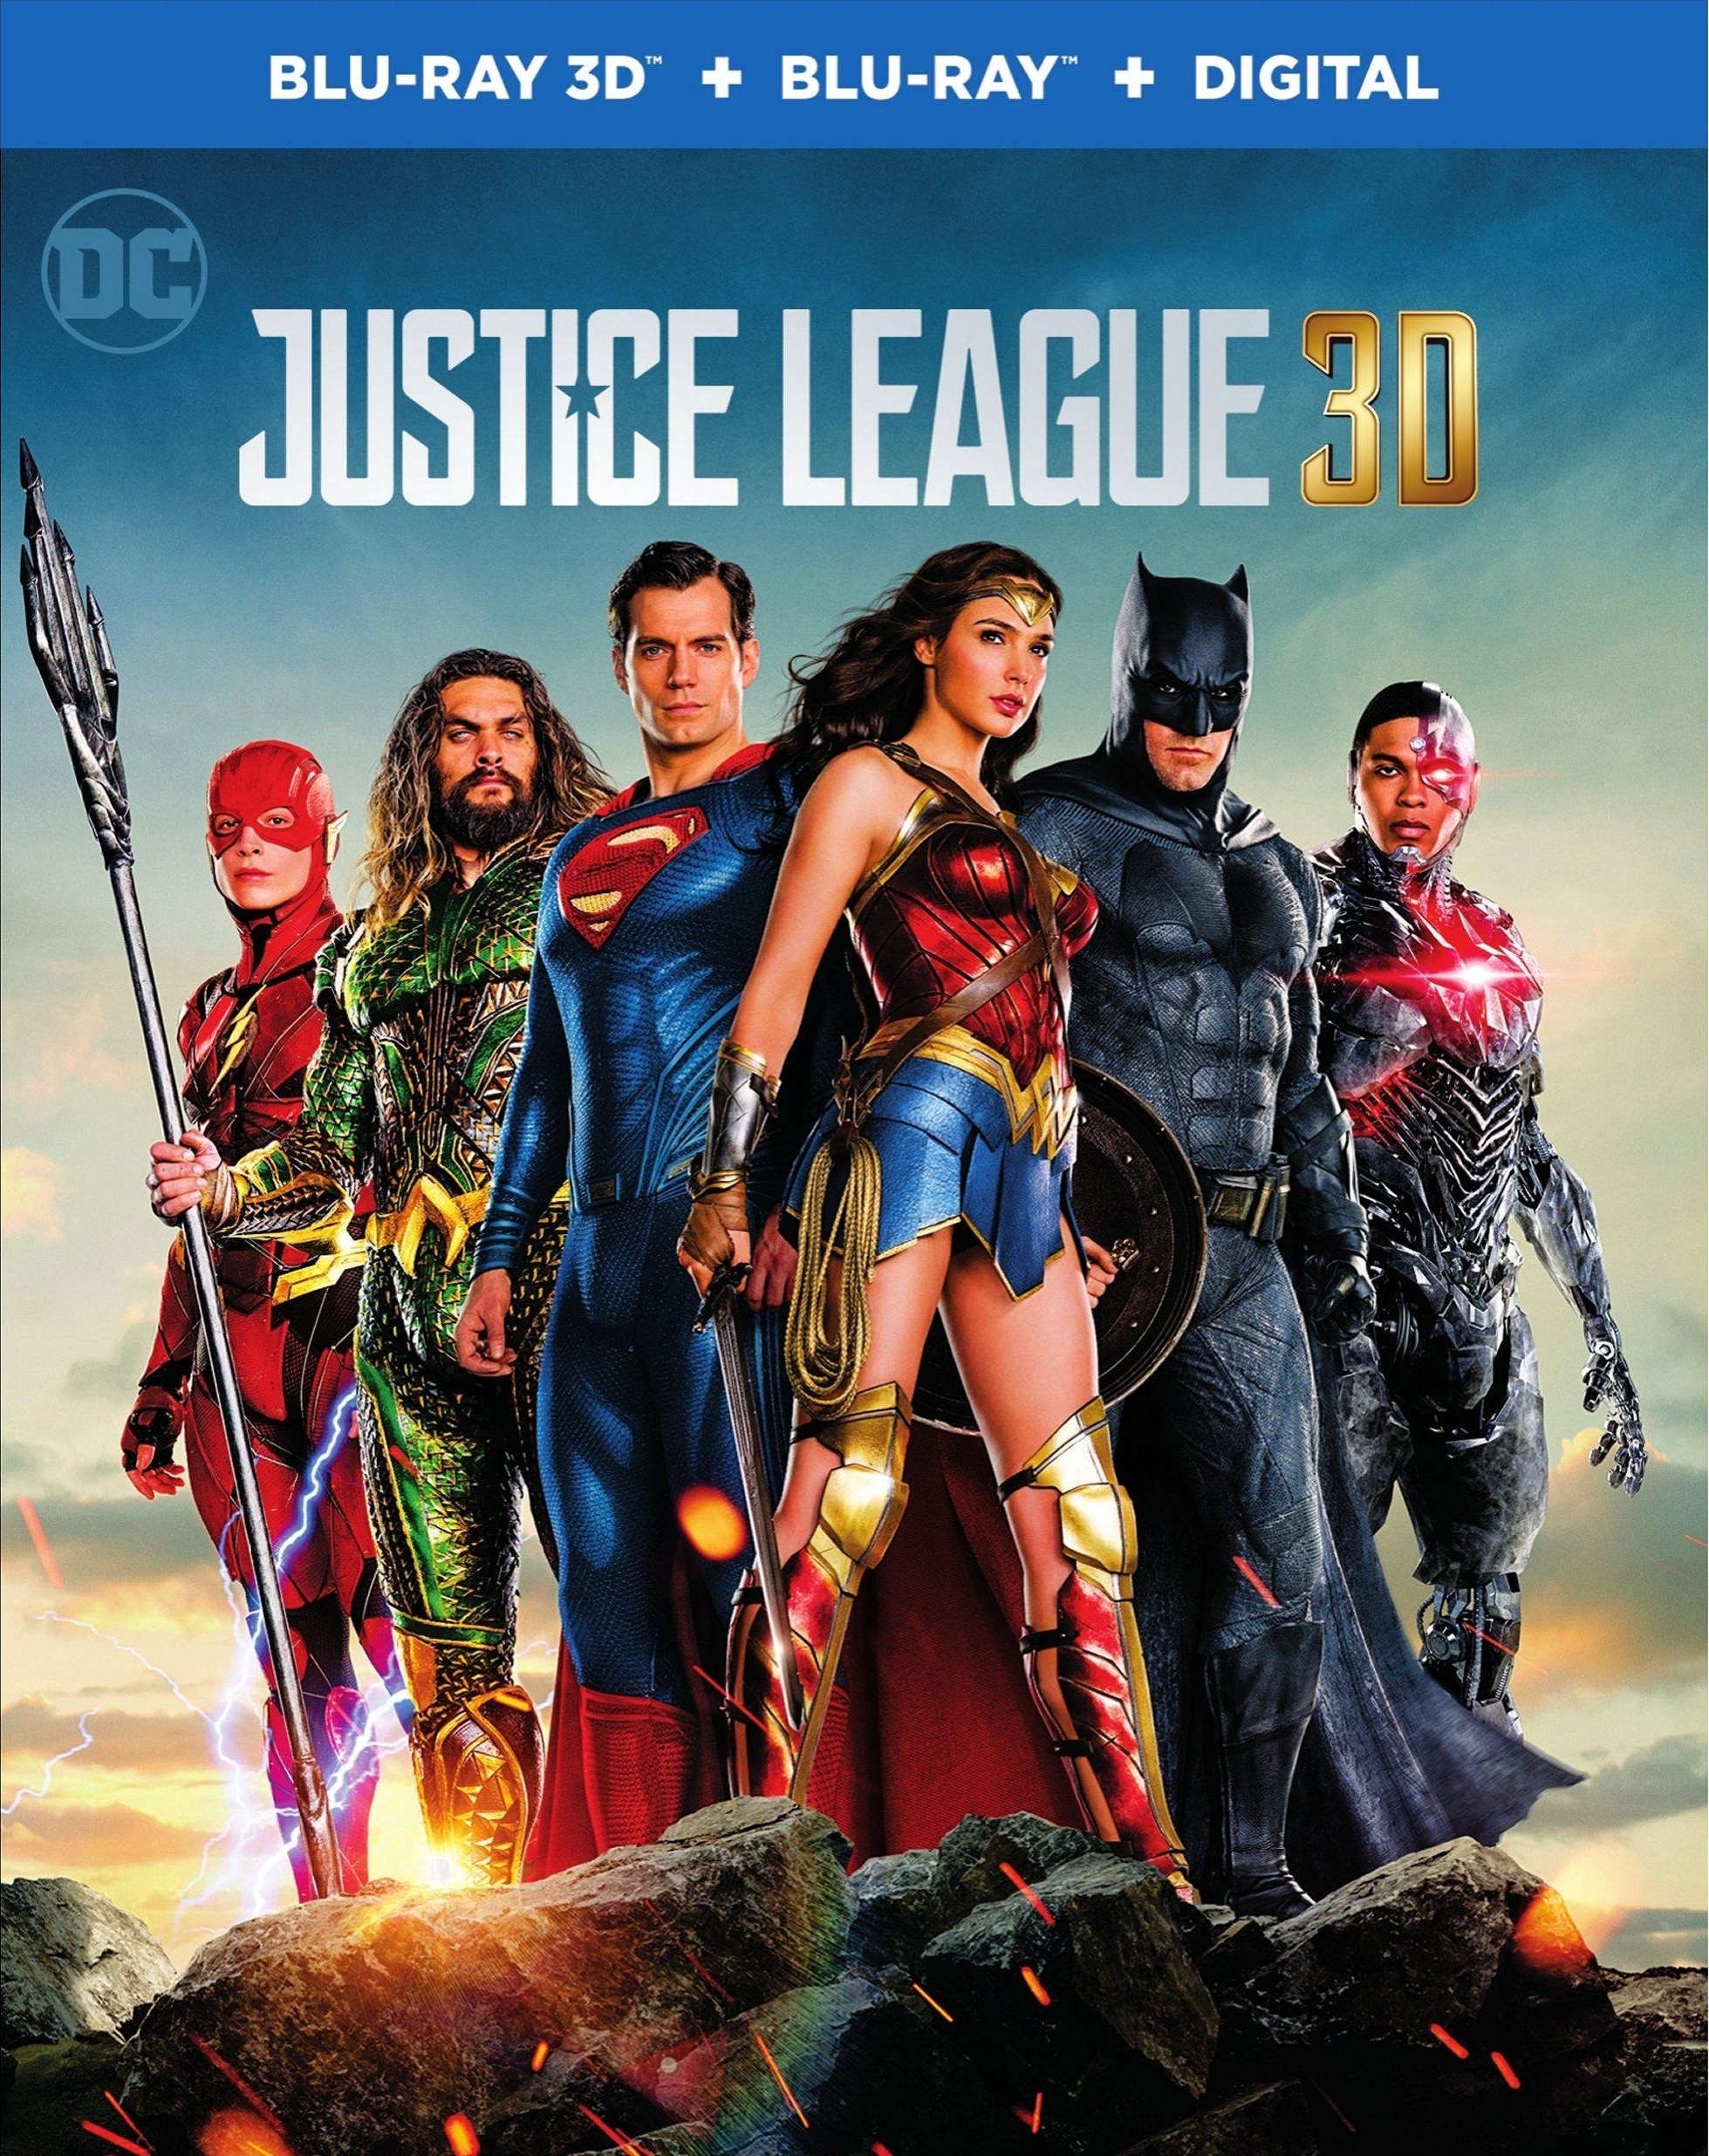 Justice-league-3d-movie.jpg